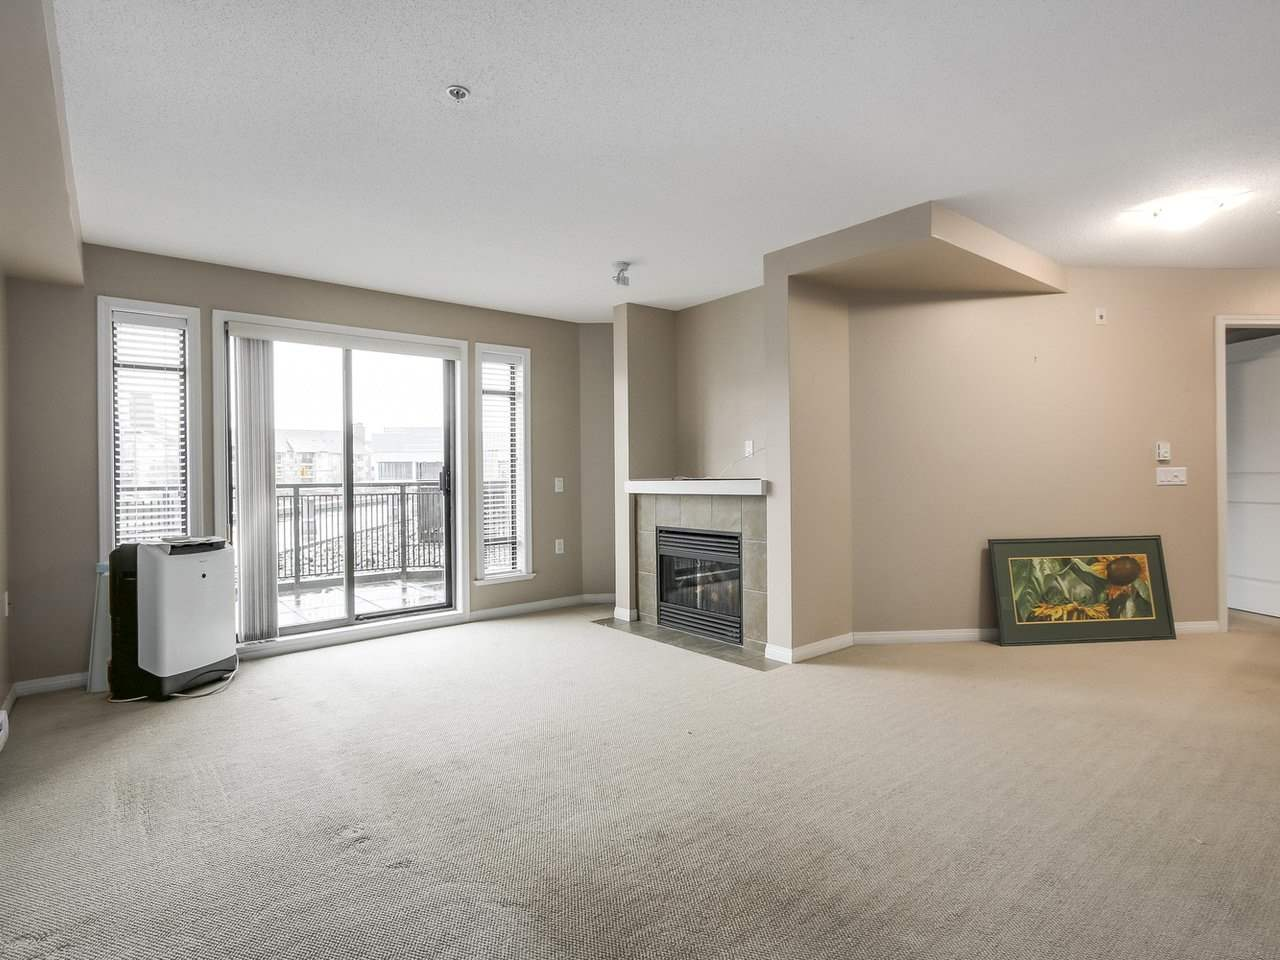 Photo 6: Photos: 226 8880 202 Street in Langley: Walnut Grove Condo for sale : MLS® # R2234850